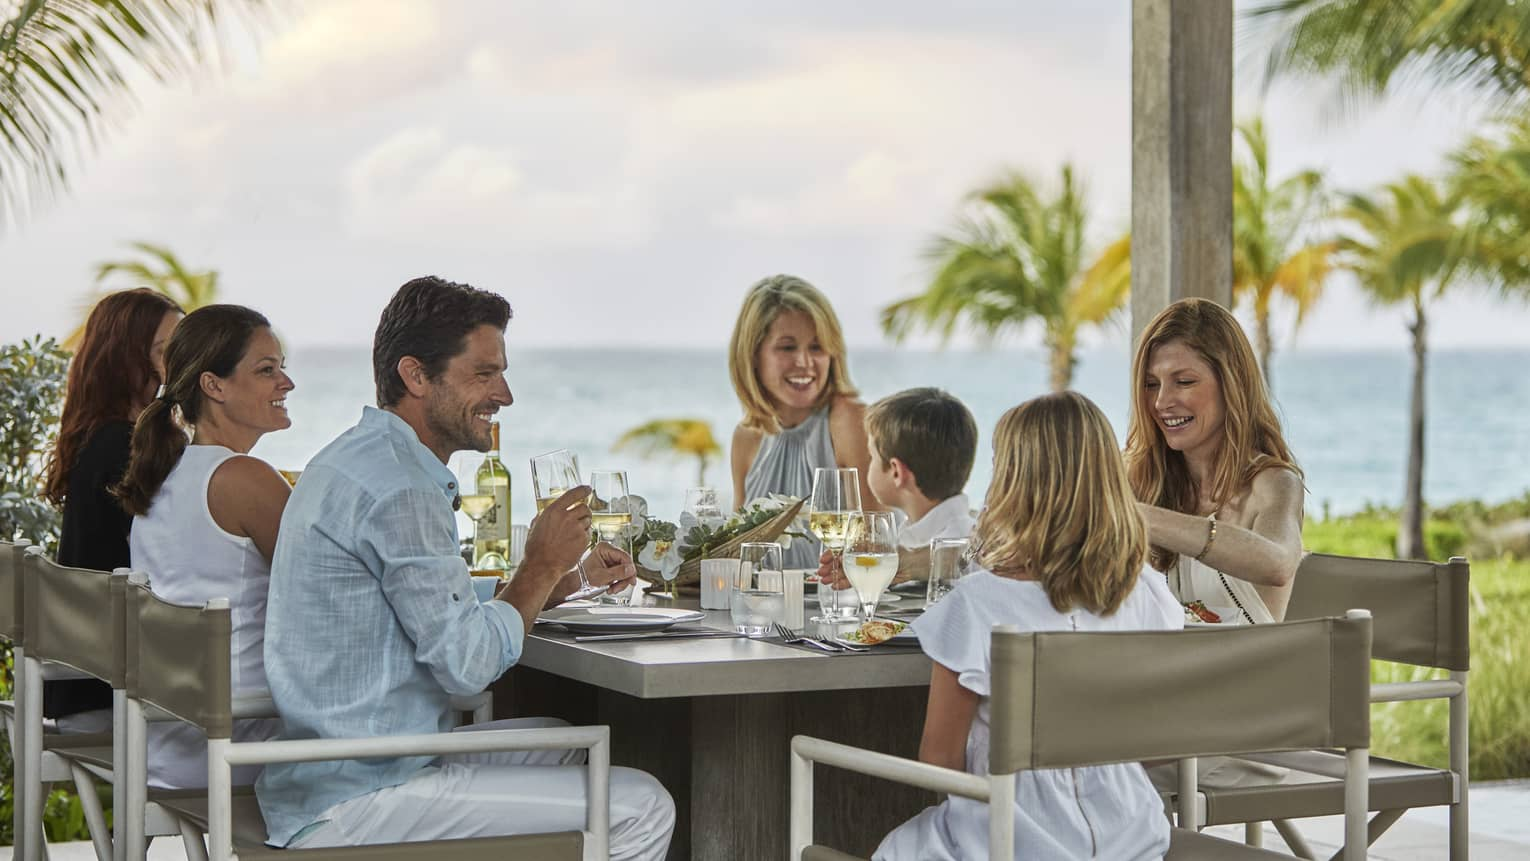 Family of seven enjoys dinner on outdoor table, ocean in background